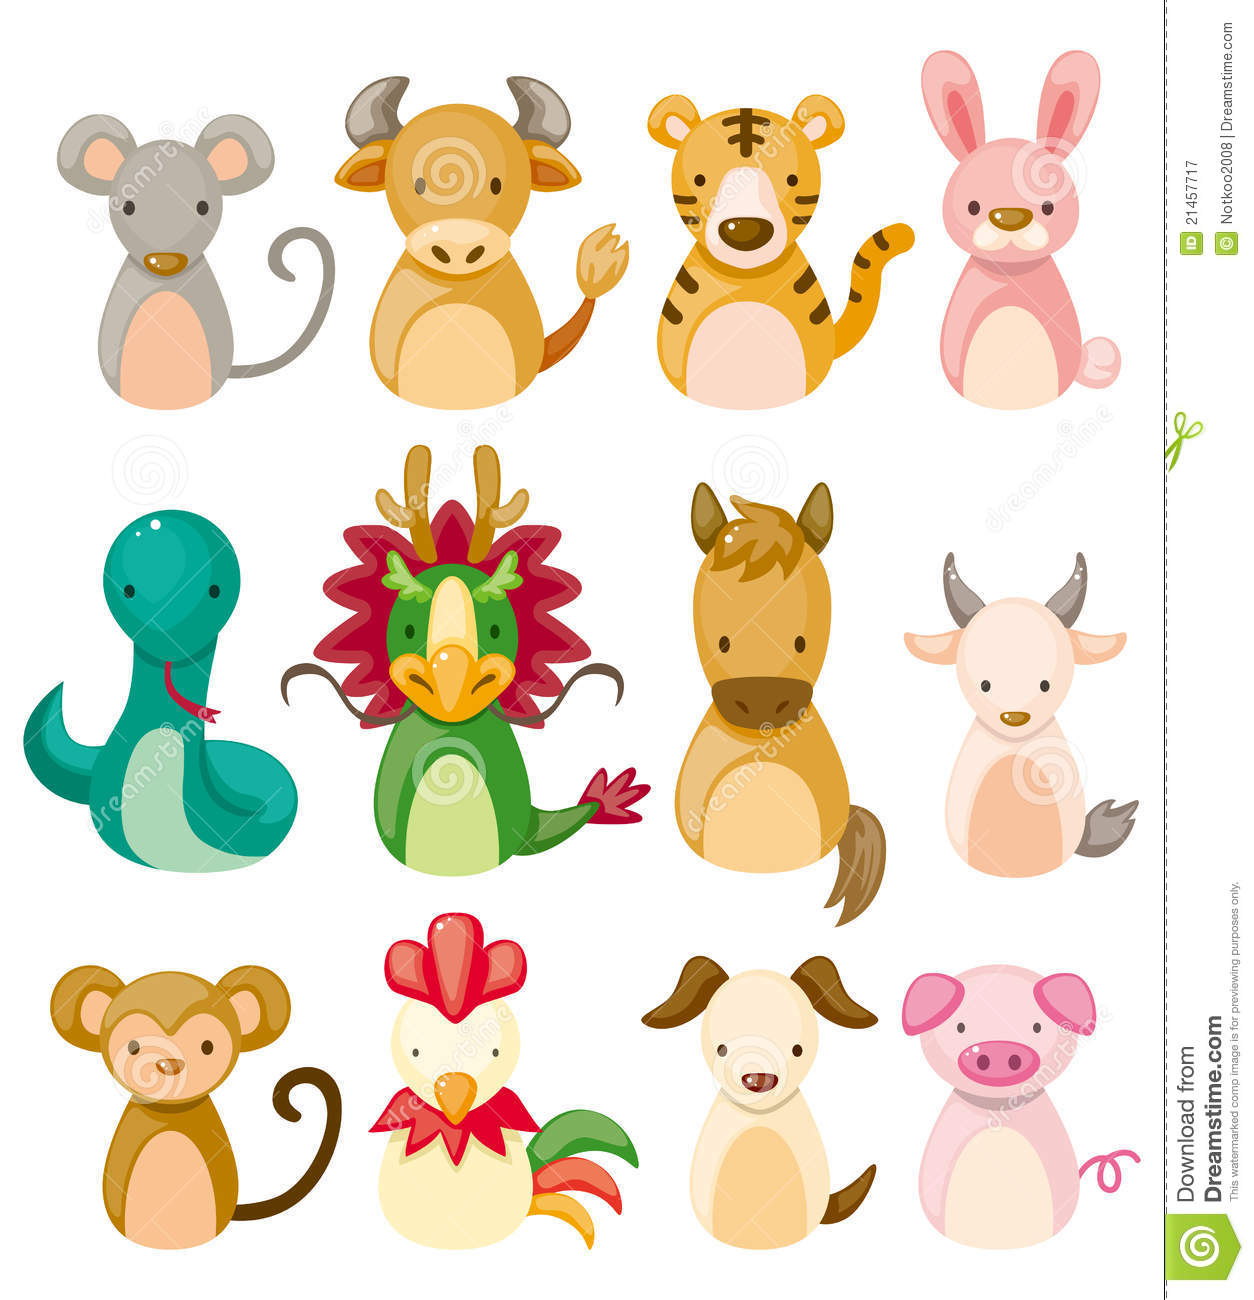 ... Chinese Zodiac Animal Royalty Free Stock Photography - Image: 21457717: www.dreamstime.com/royalty-free-stock-photography-12-animal-icon...